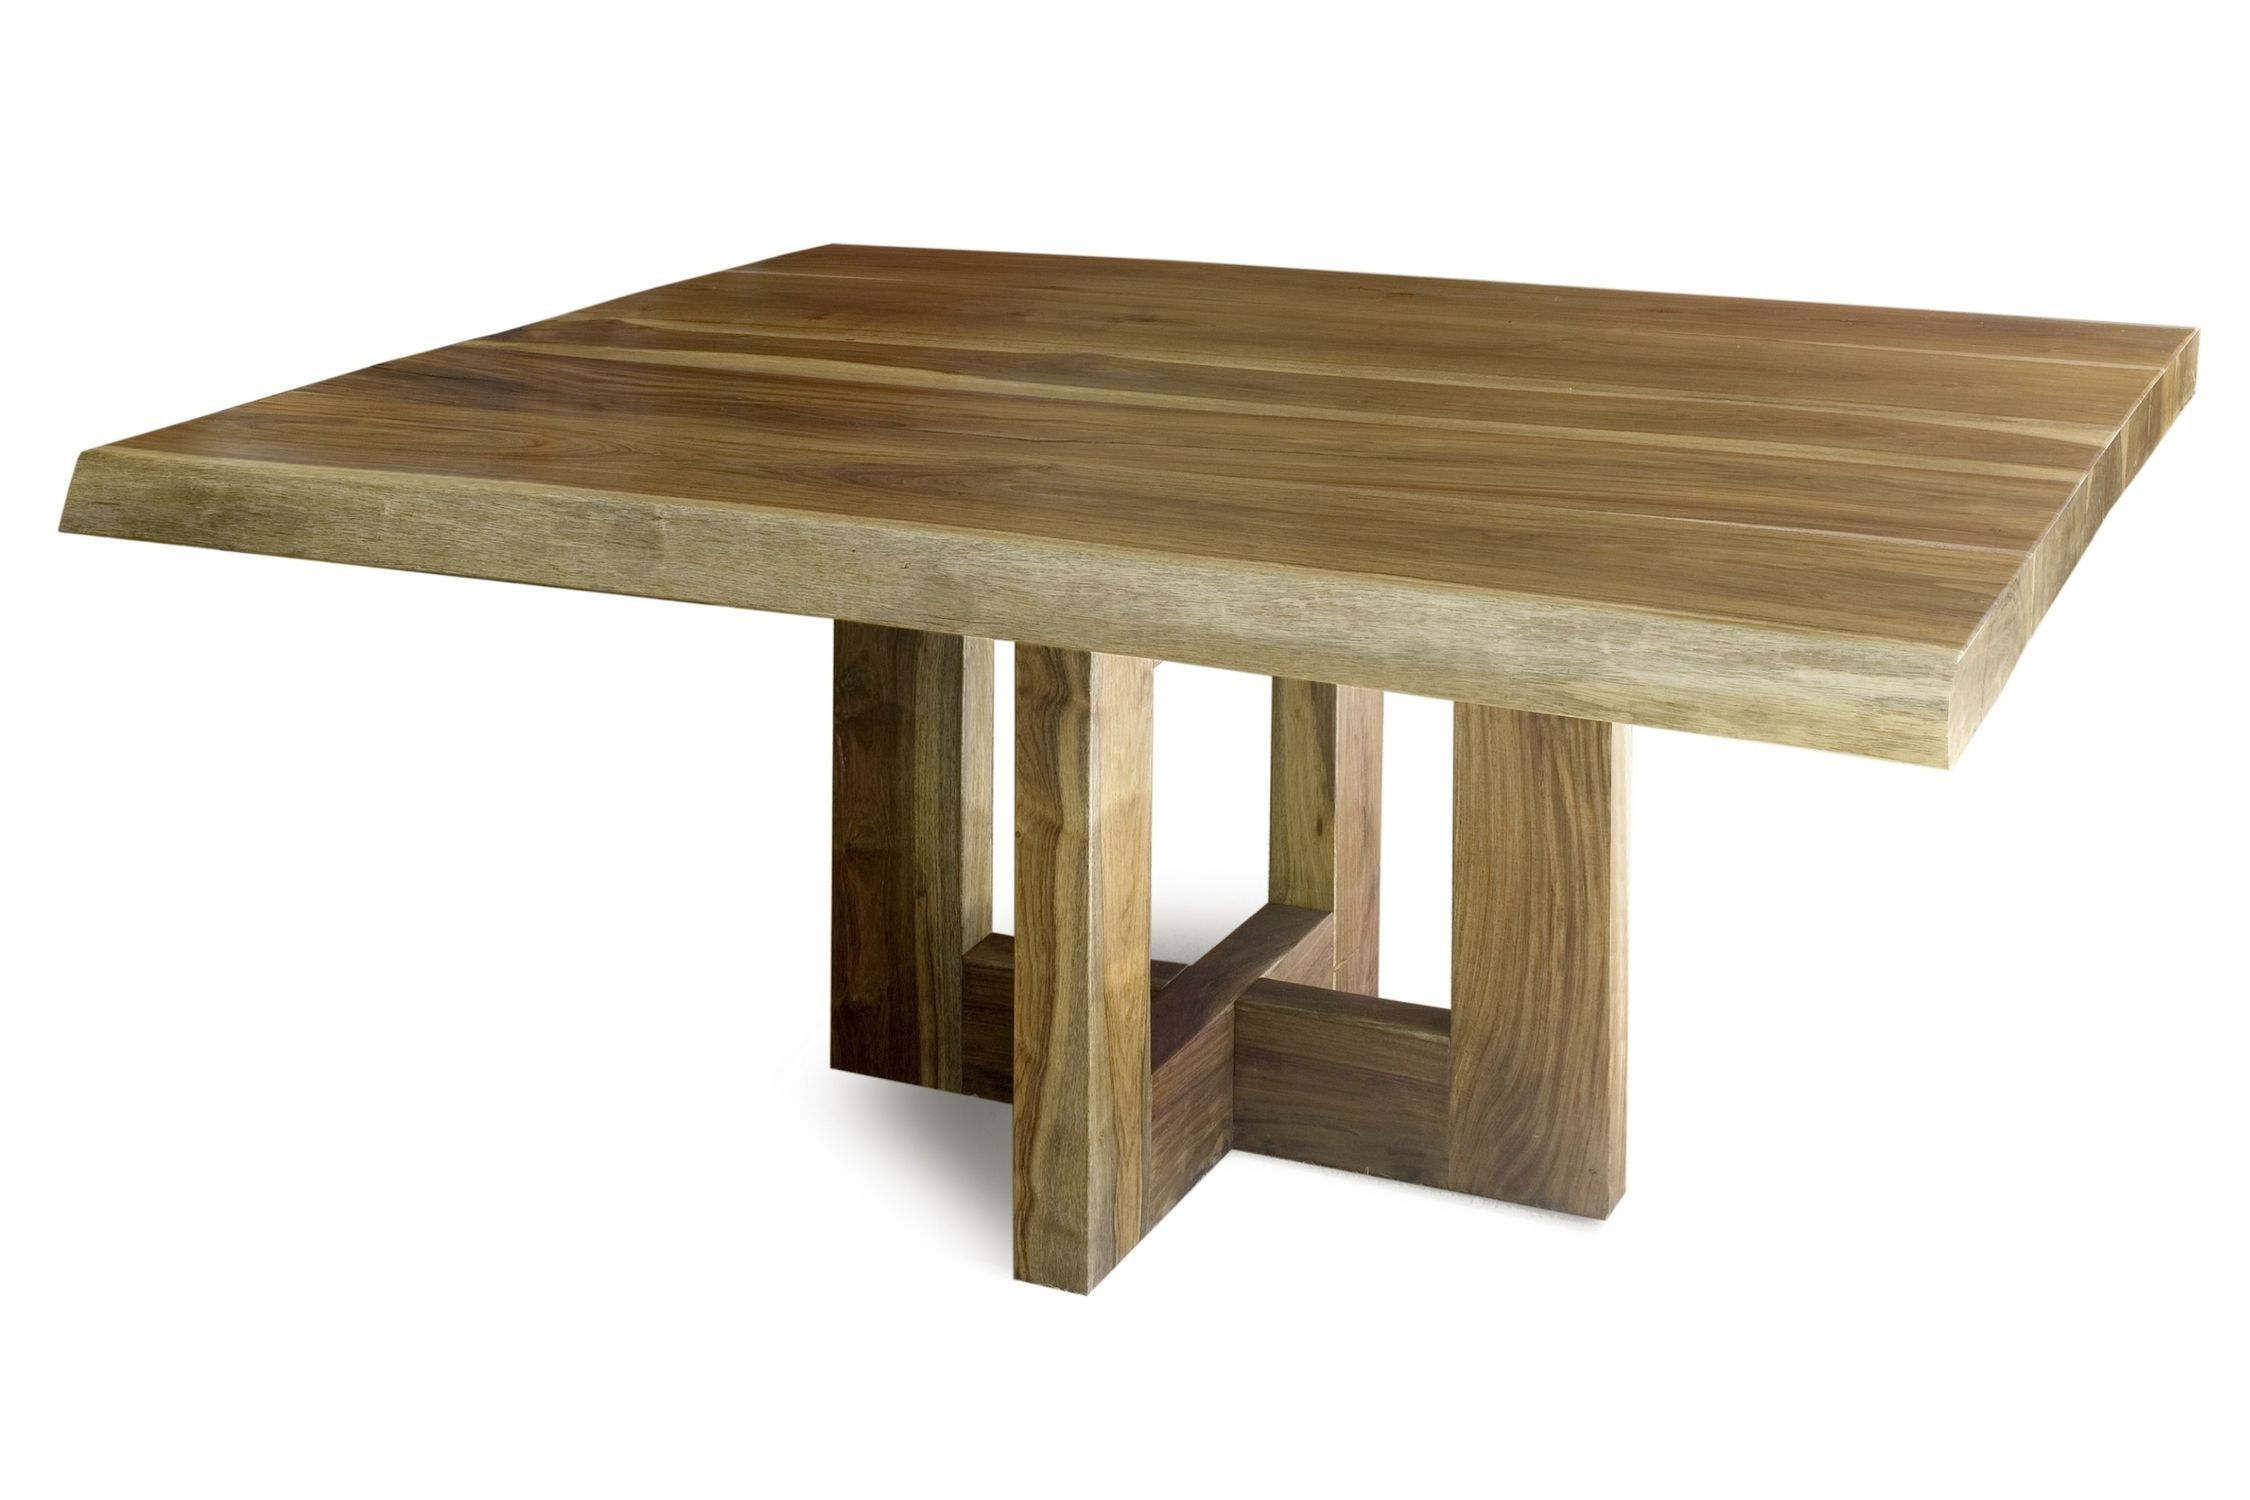 Contemporary rectangle unfinished reclaimed wood table for for Design restaurant table